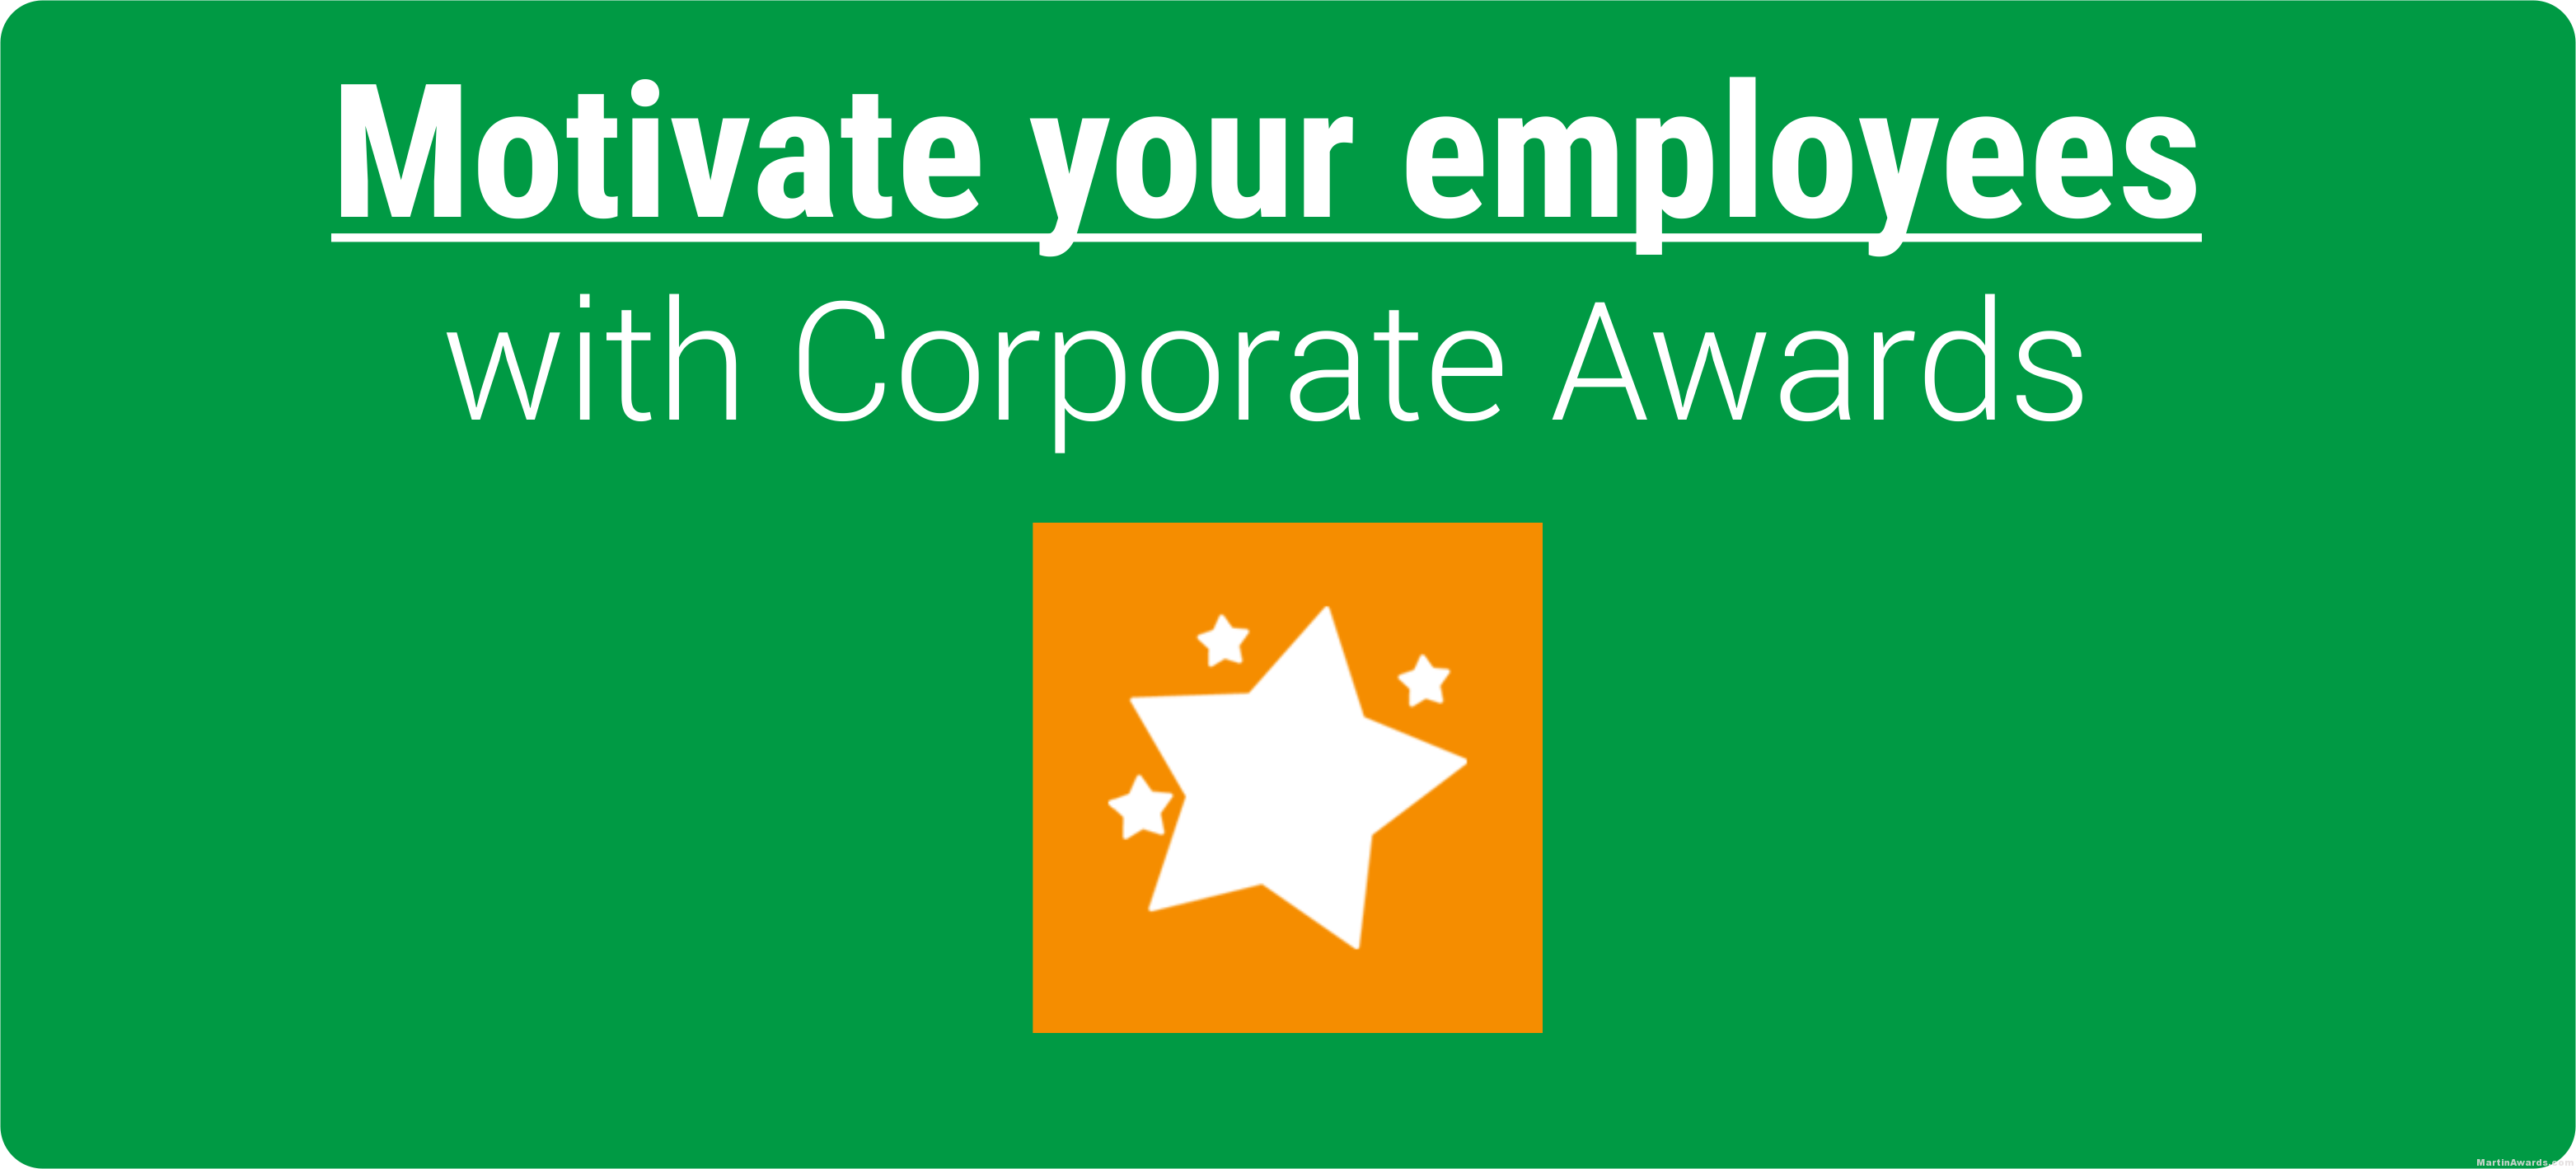 Motivate your employees with corporate awards